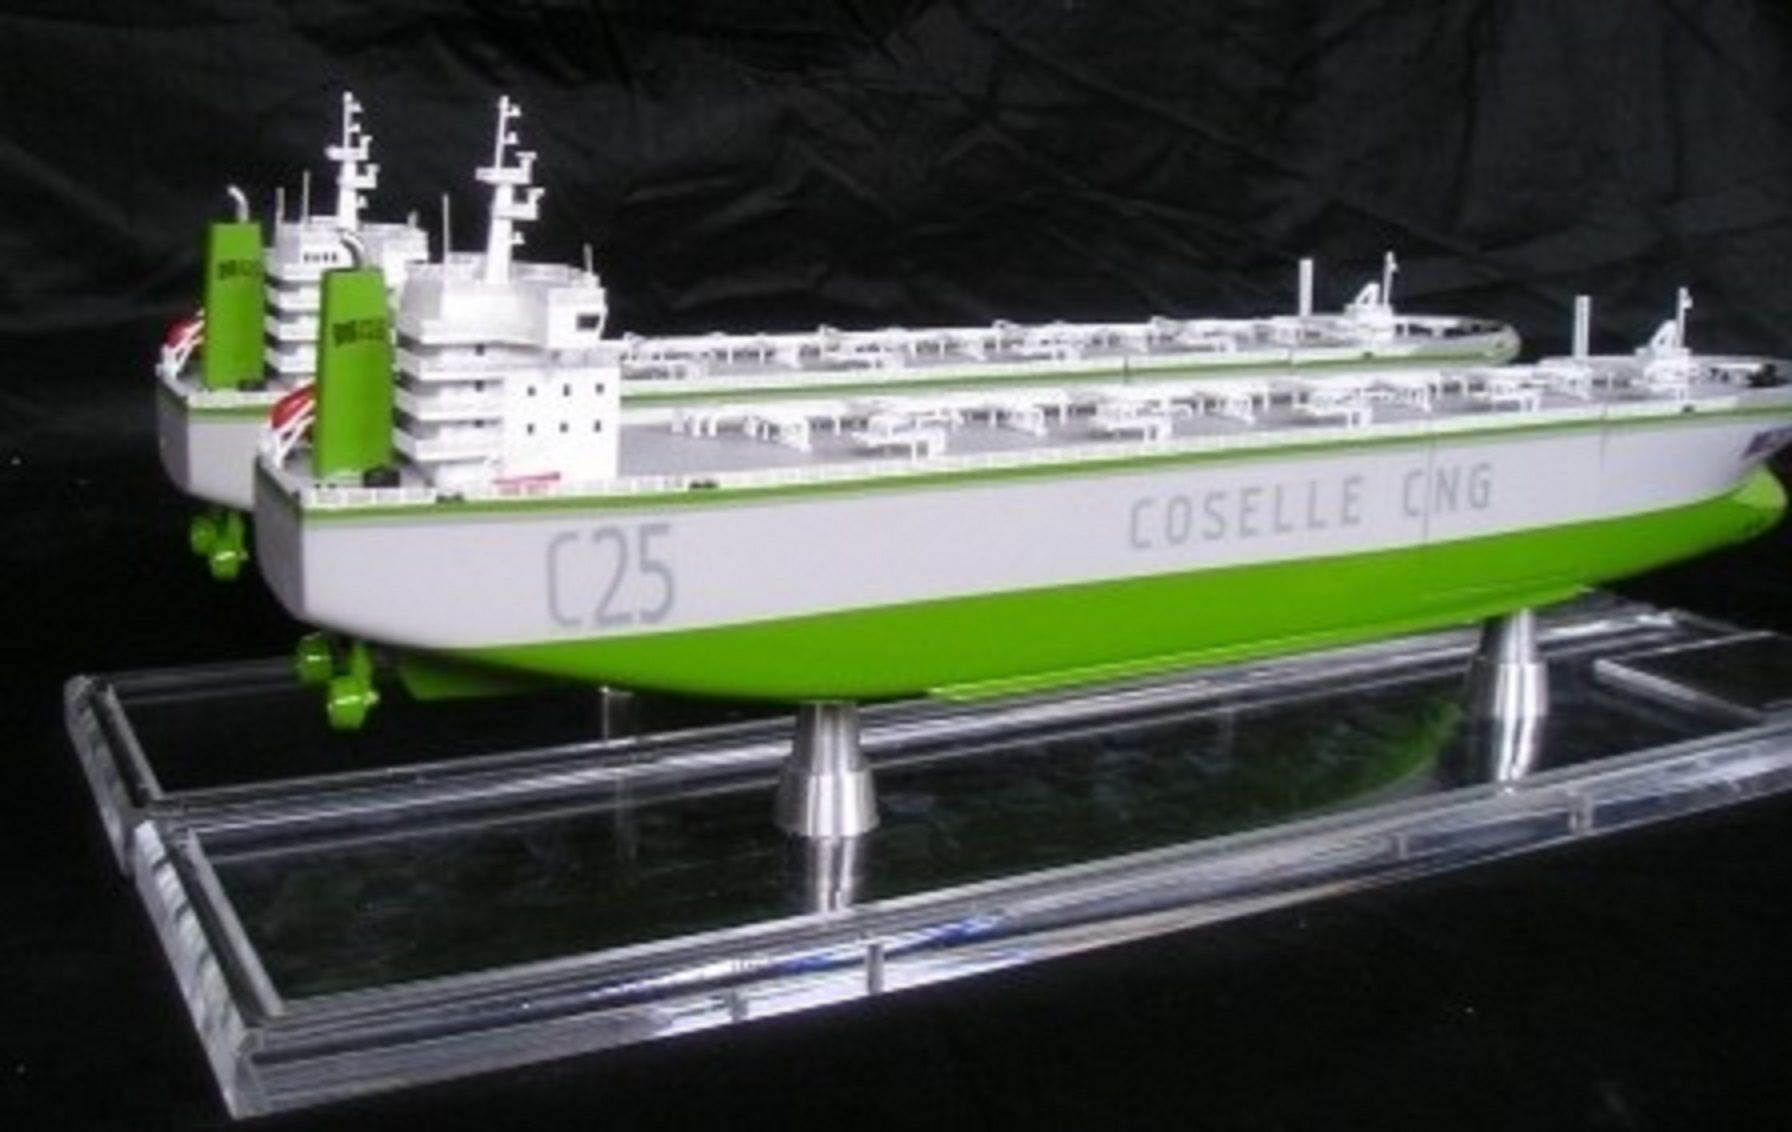 1227-6677-CNG-Open-Hull-model-in-Display-case